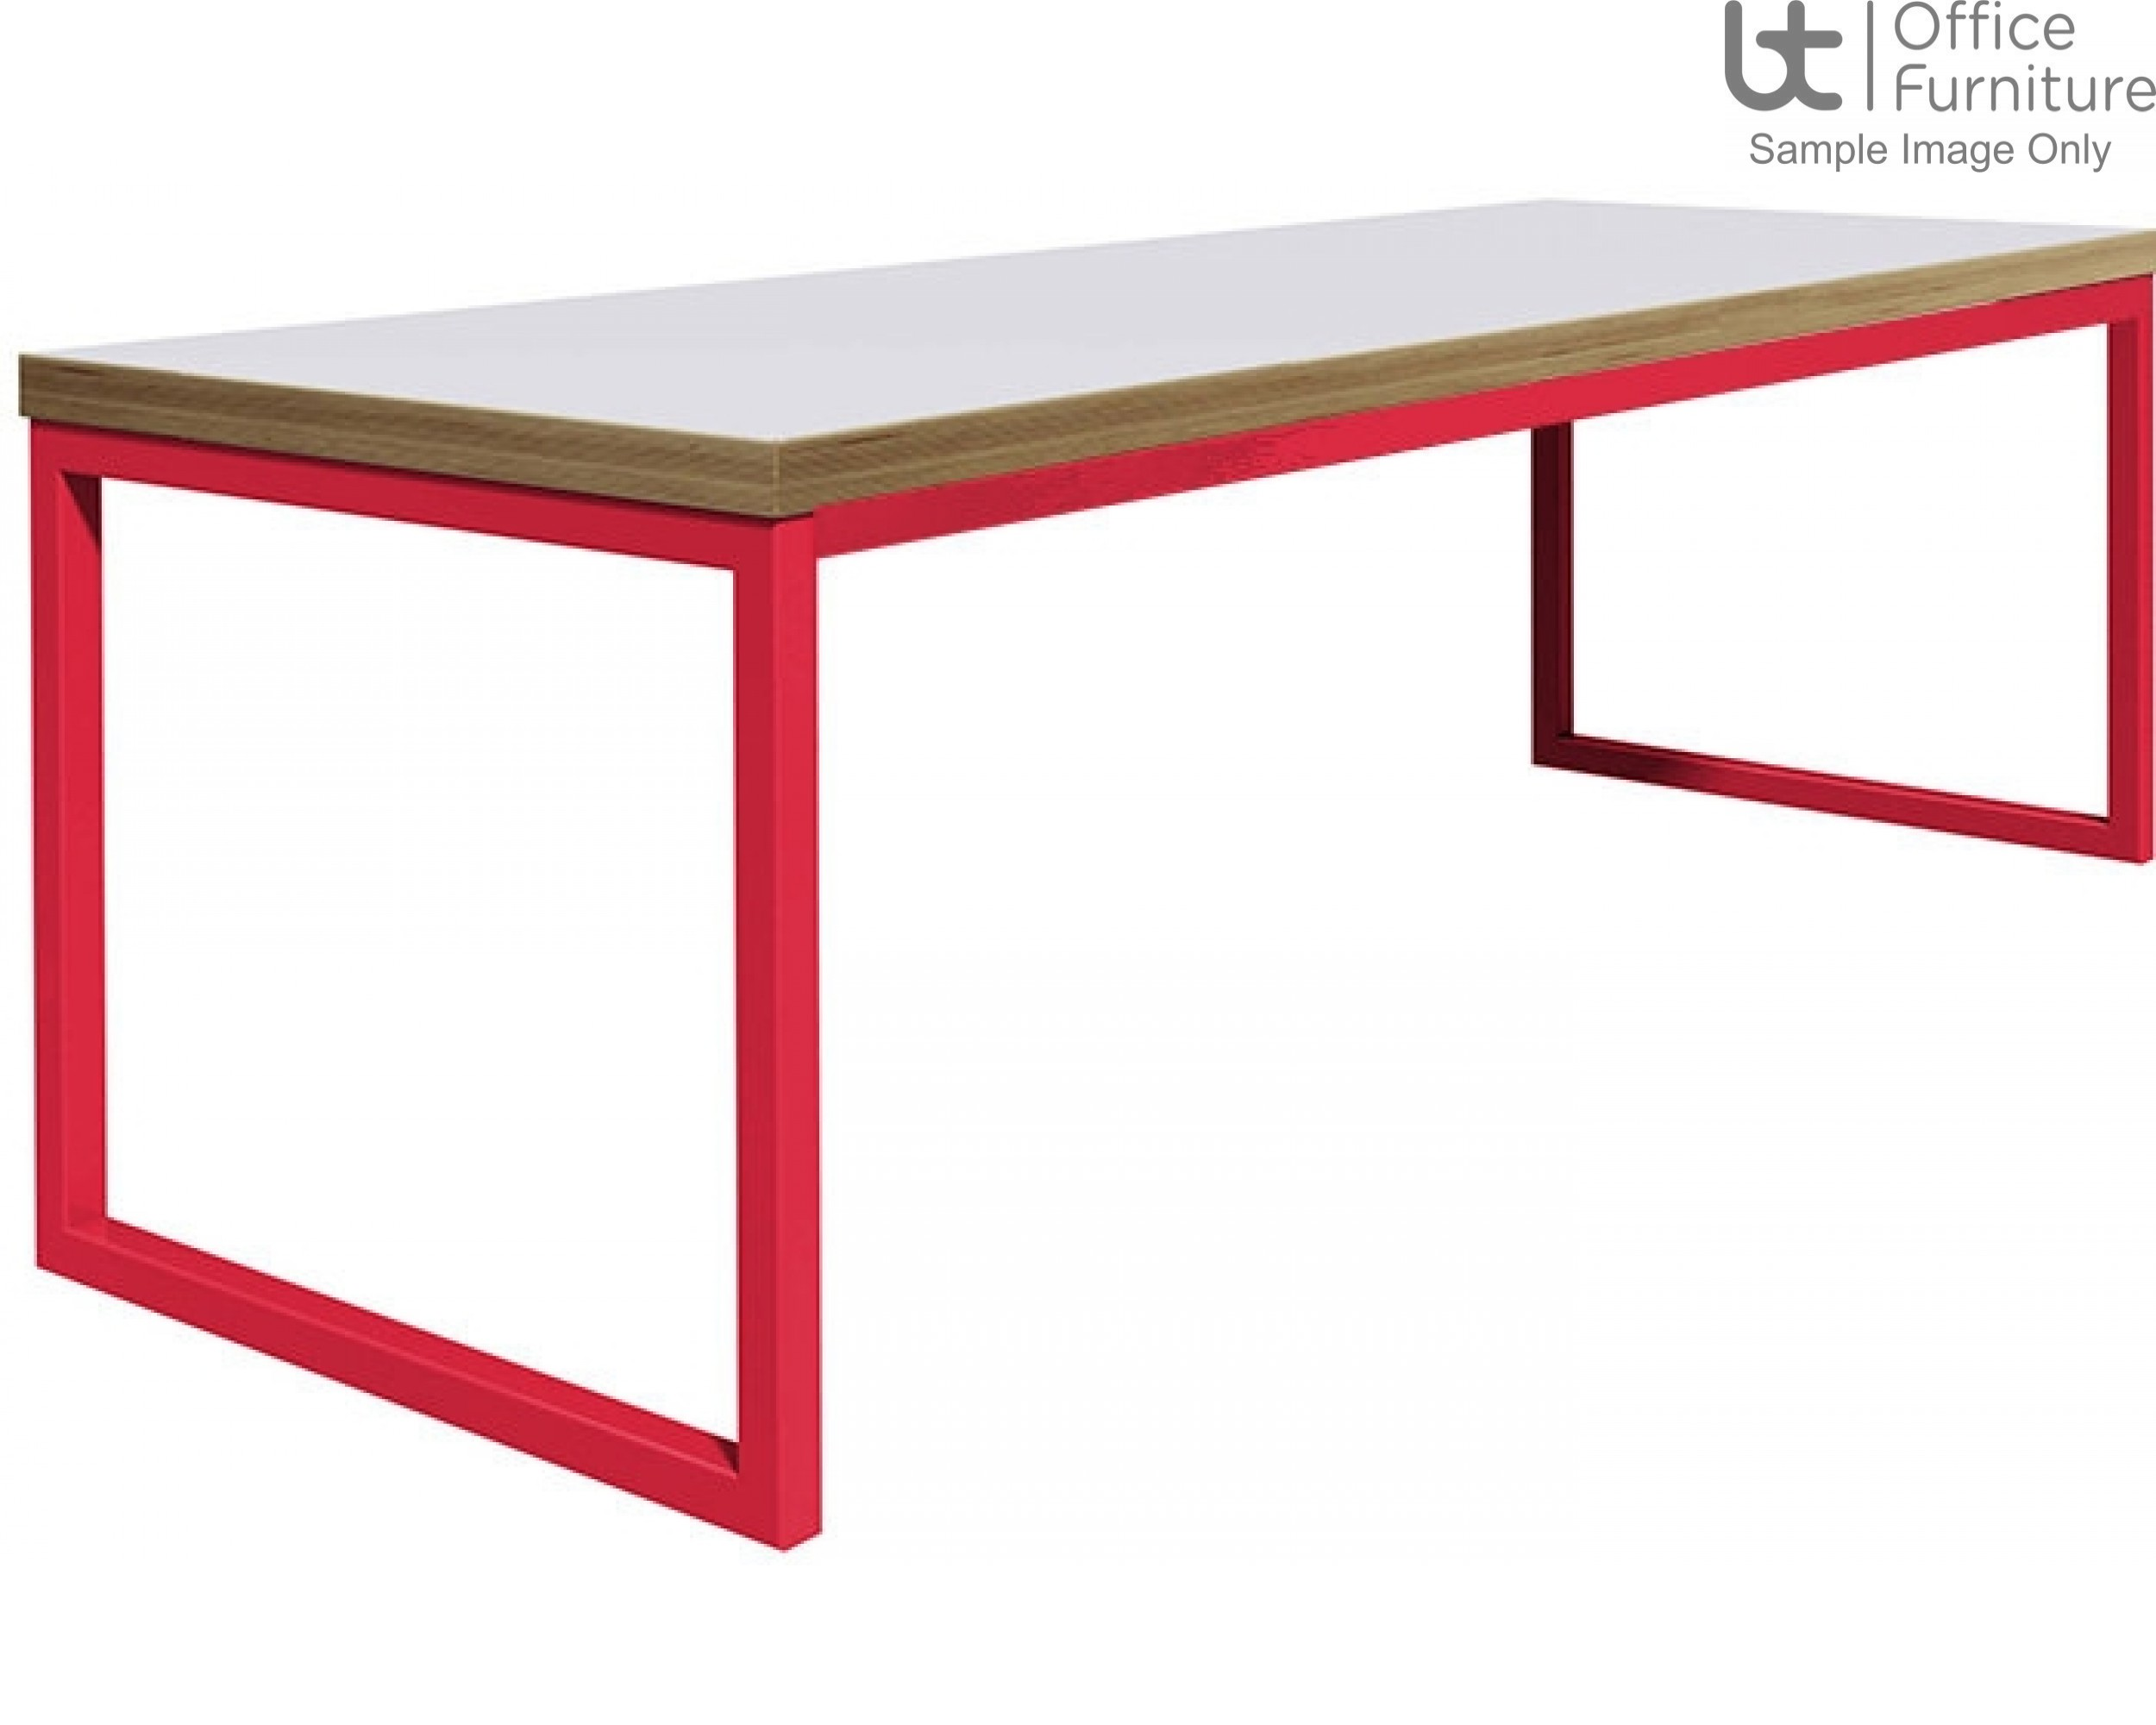 City 40/40 Robust 40mm Laminate Top School Bench Dining Table W2200mm (Premium Frame Colours)